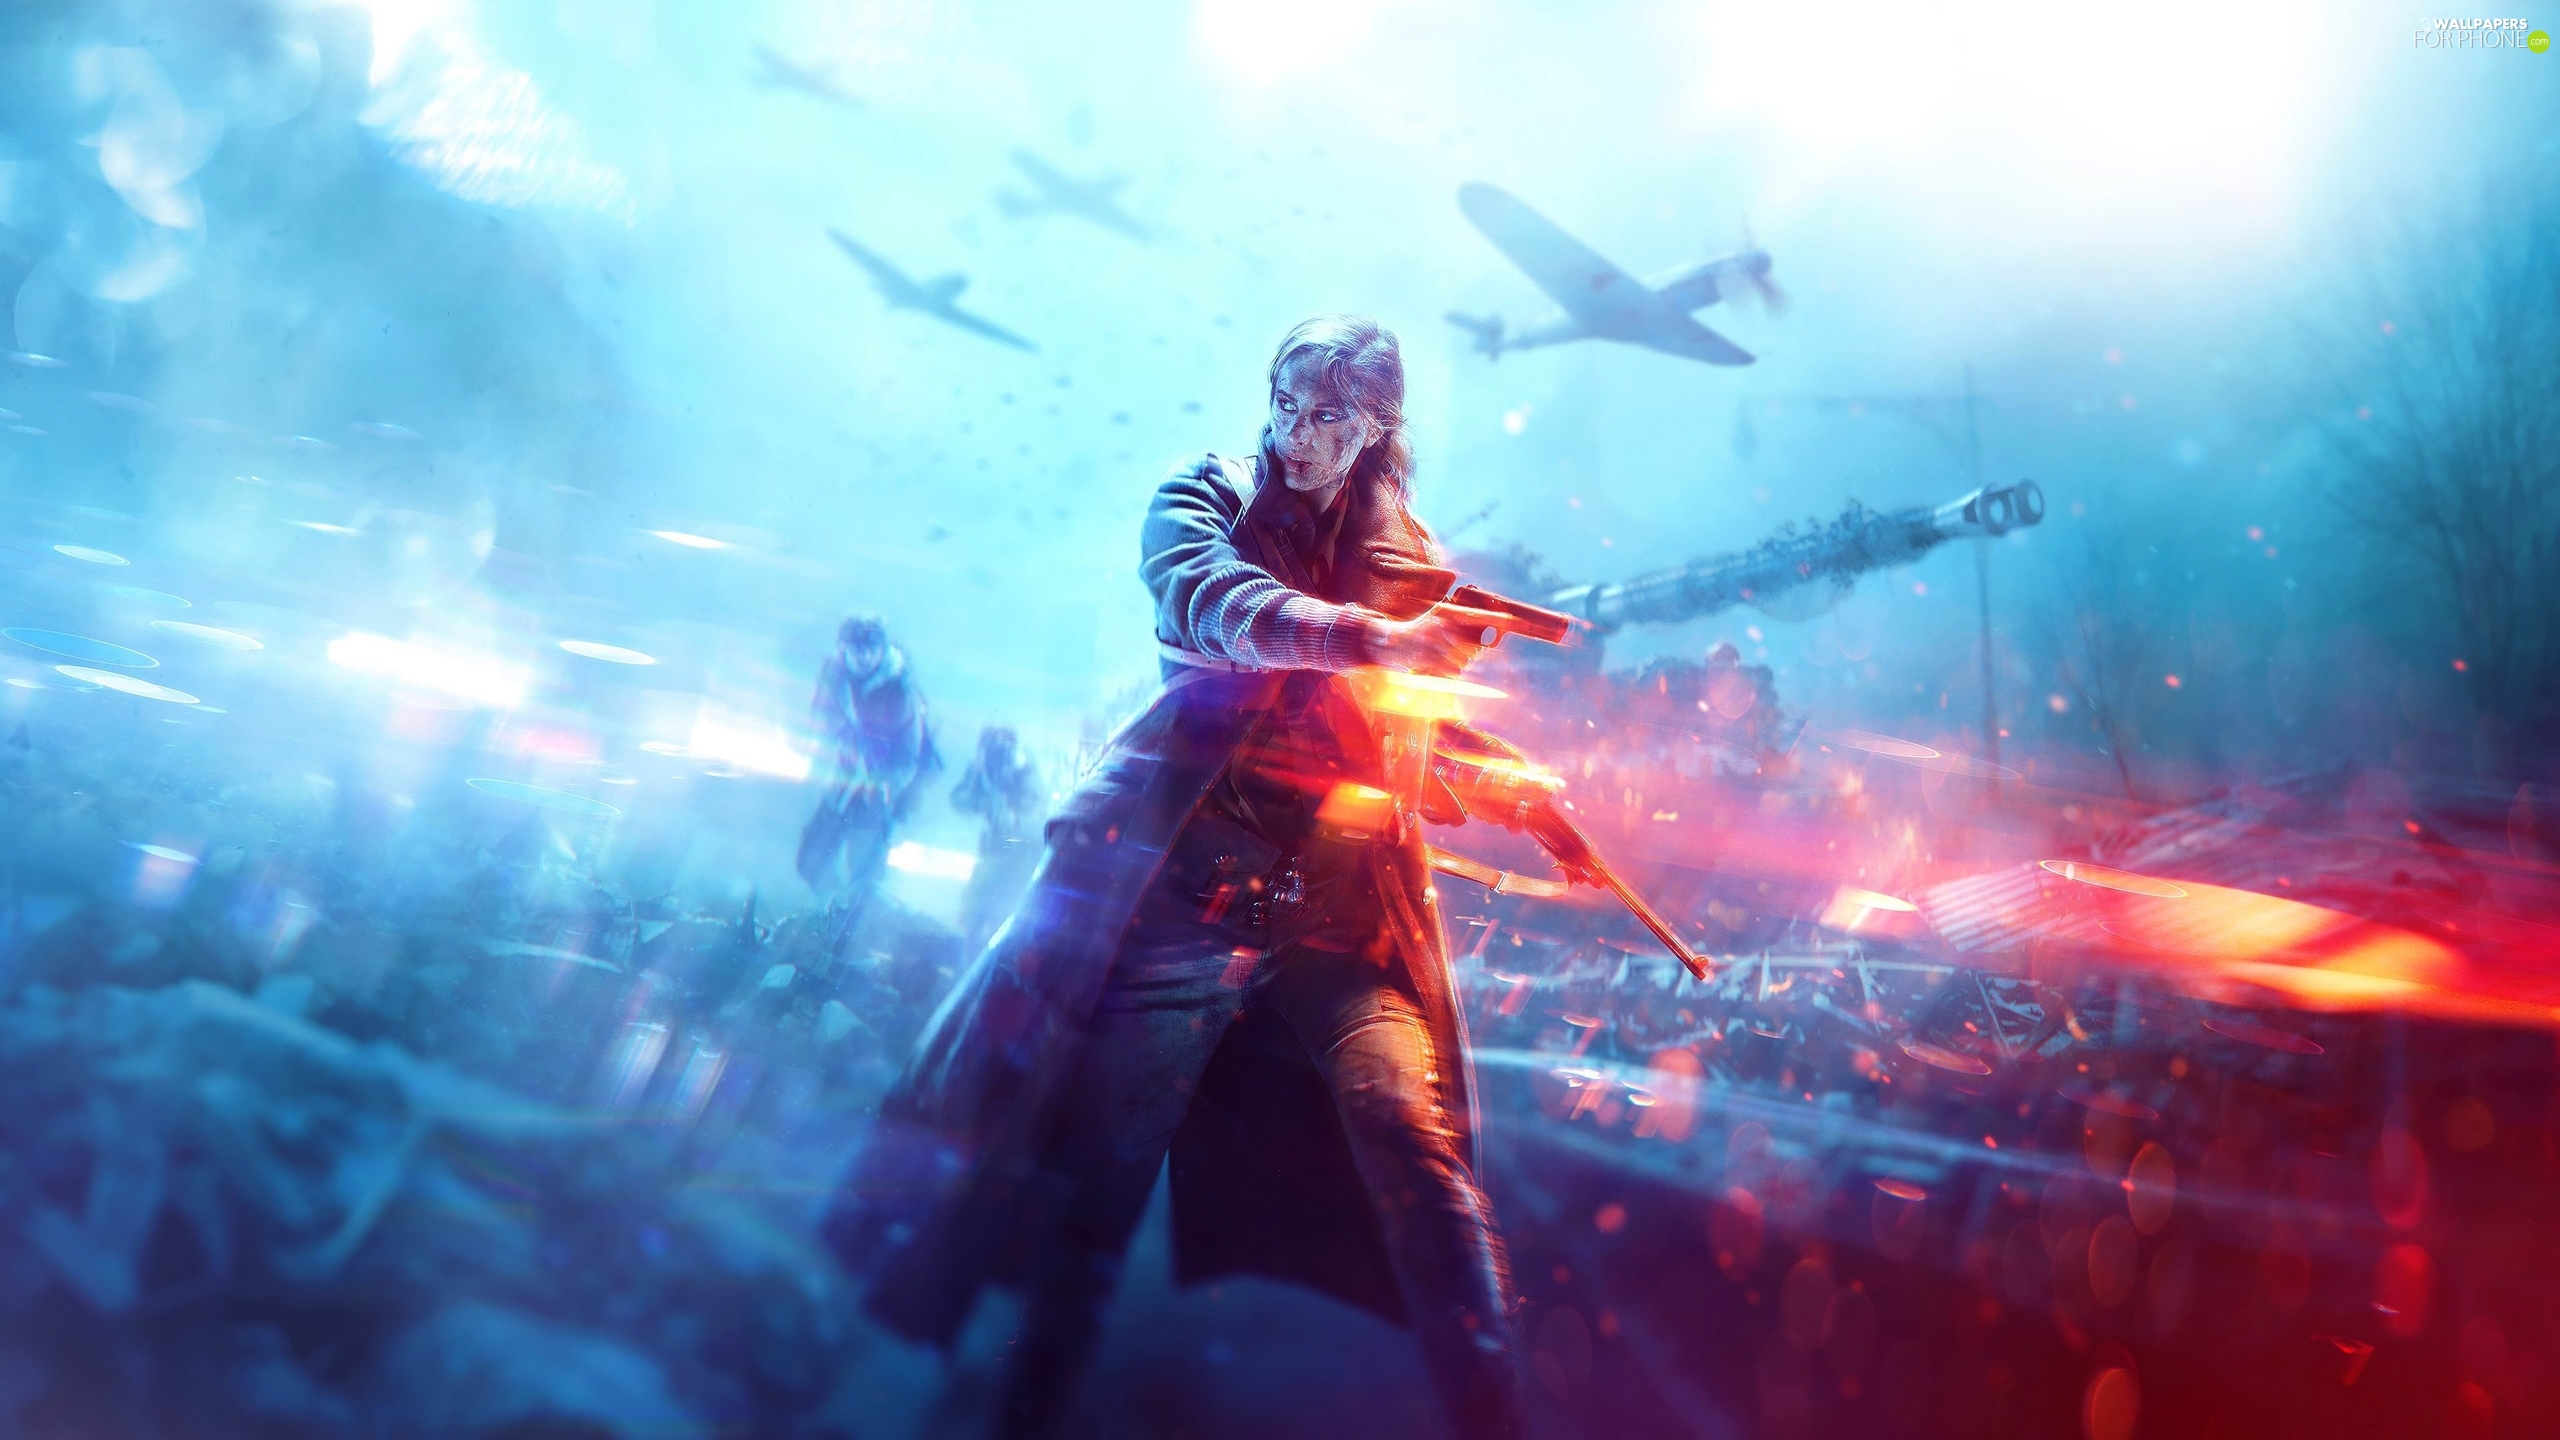 Battlefield V, Weapons, Fight, Women